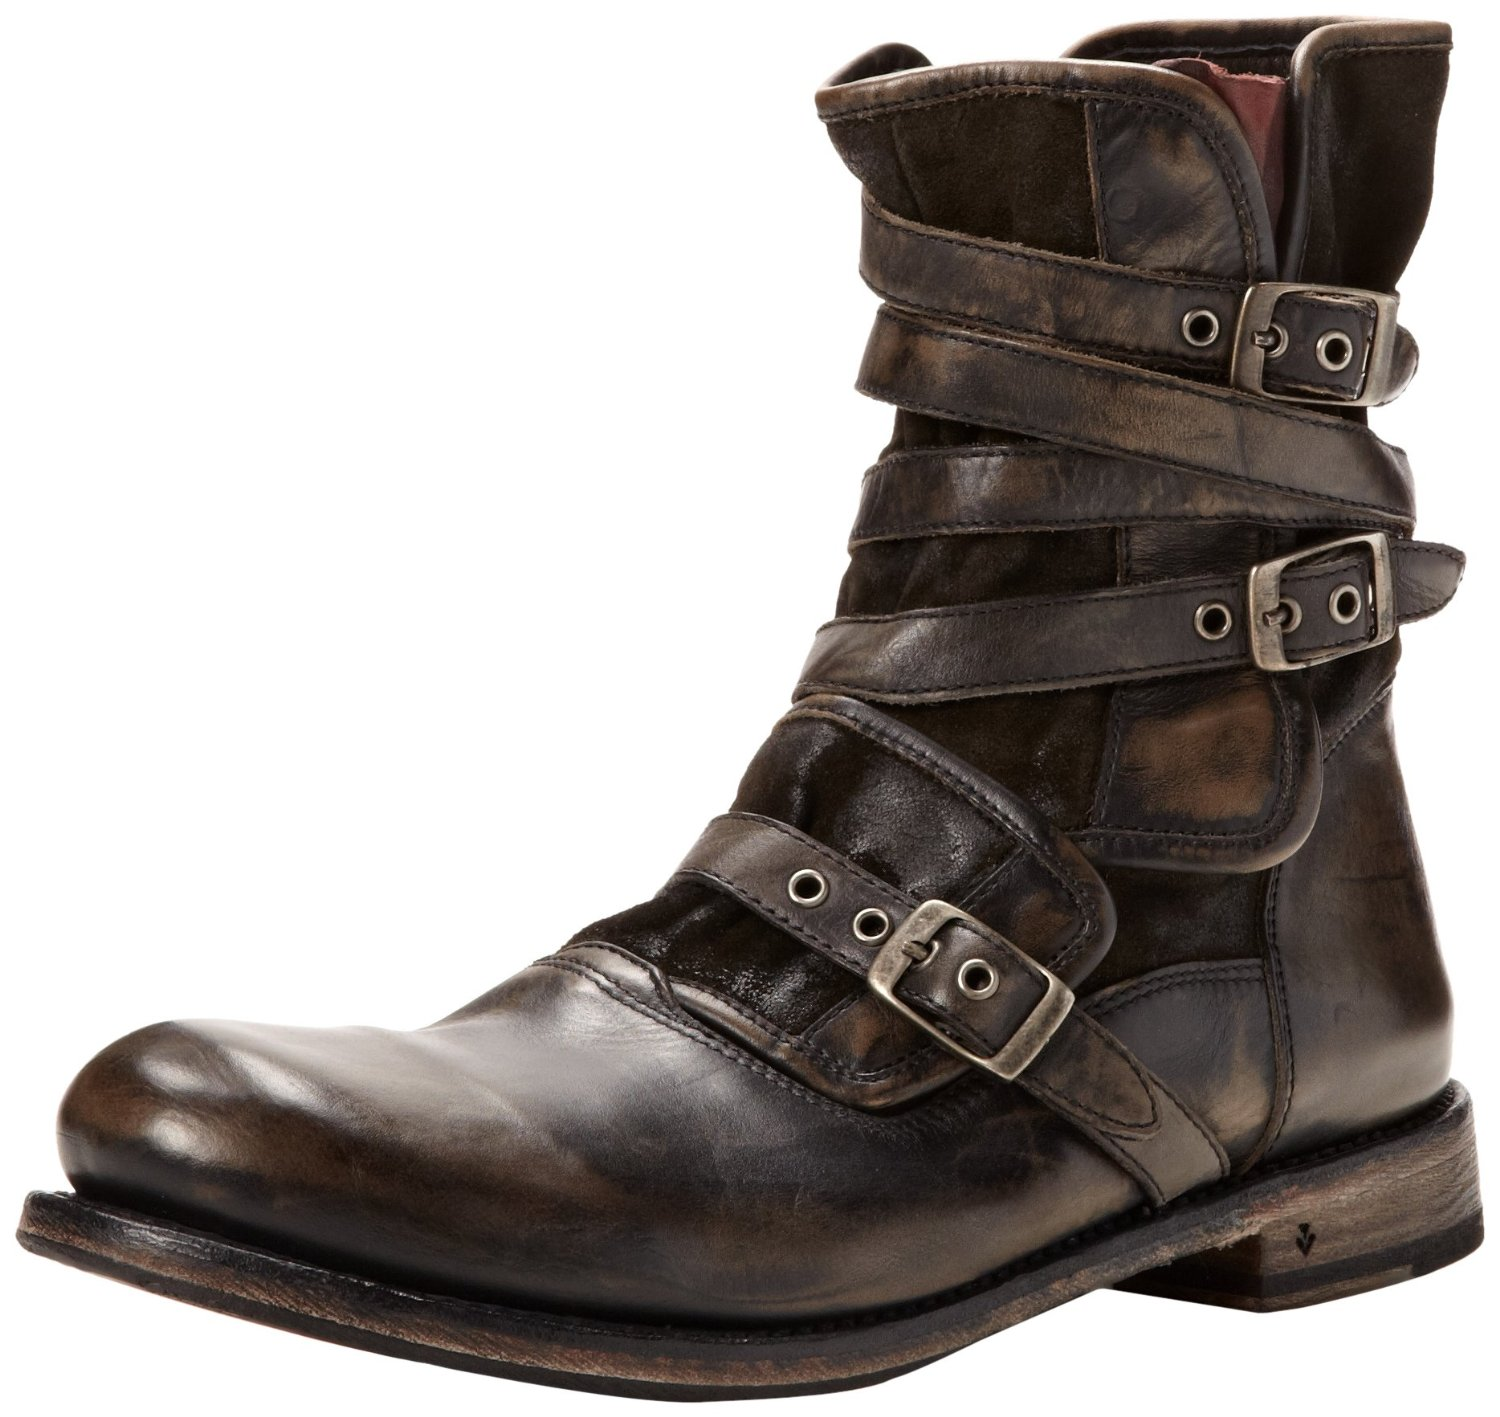 Designer Boots For Men OqW968df